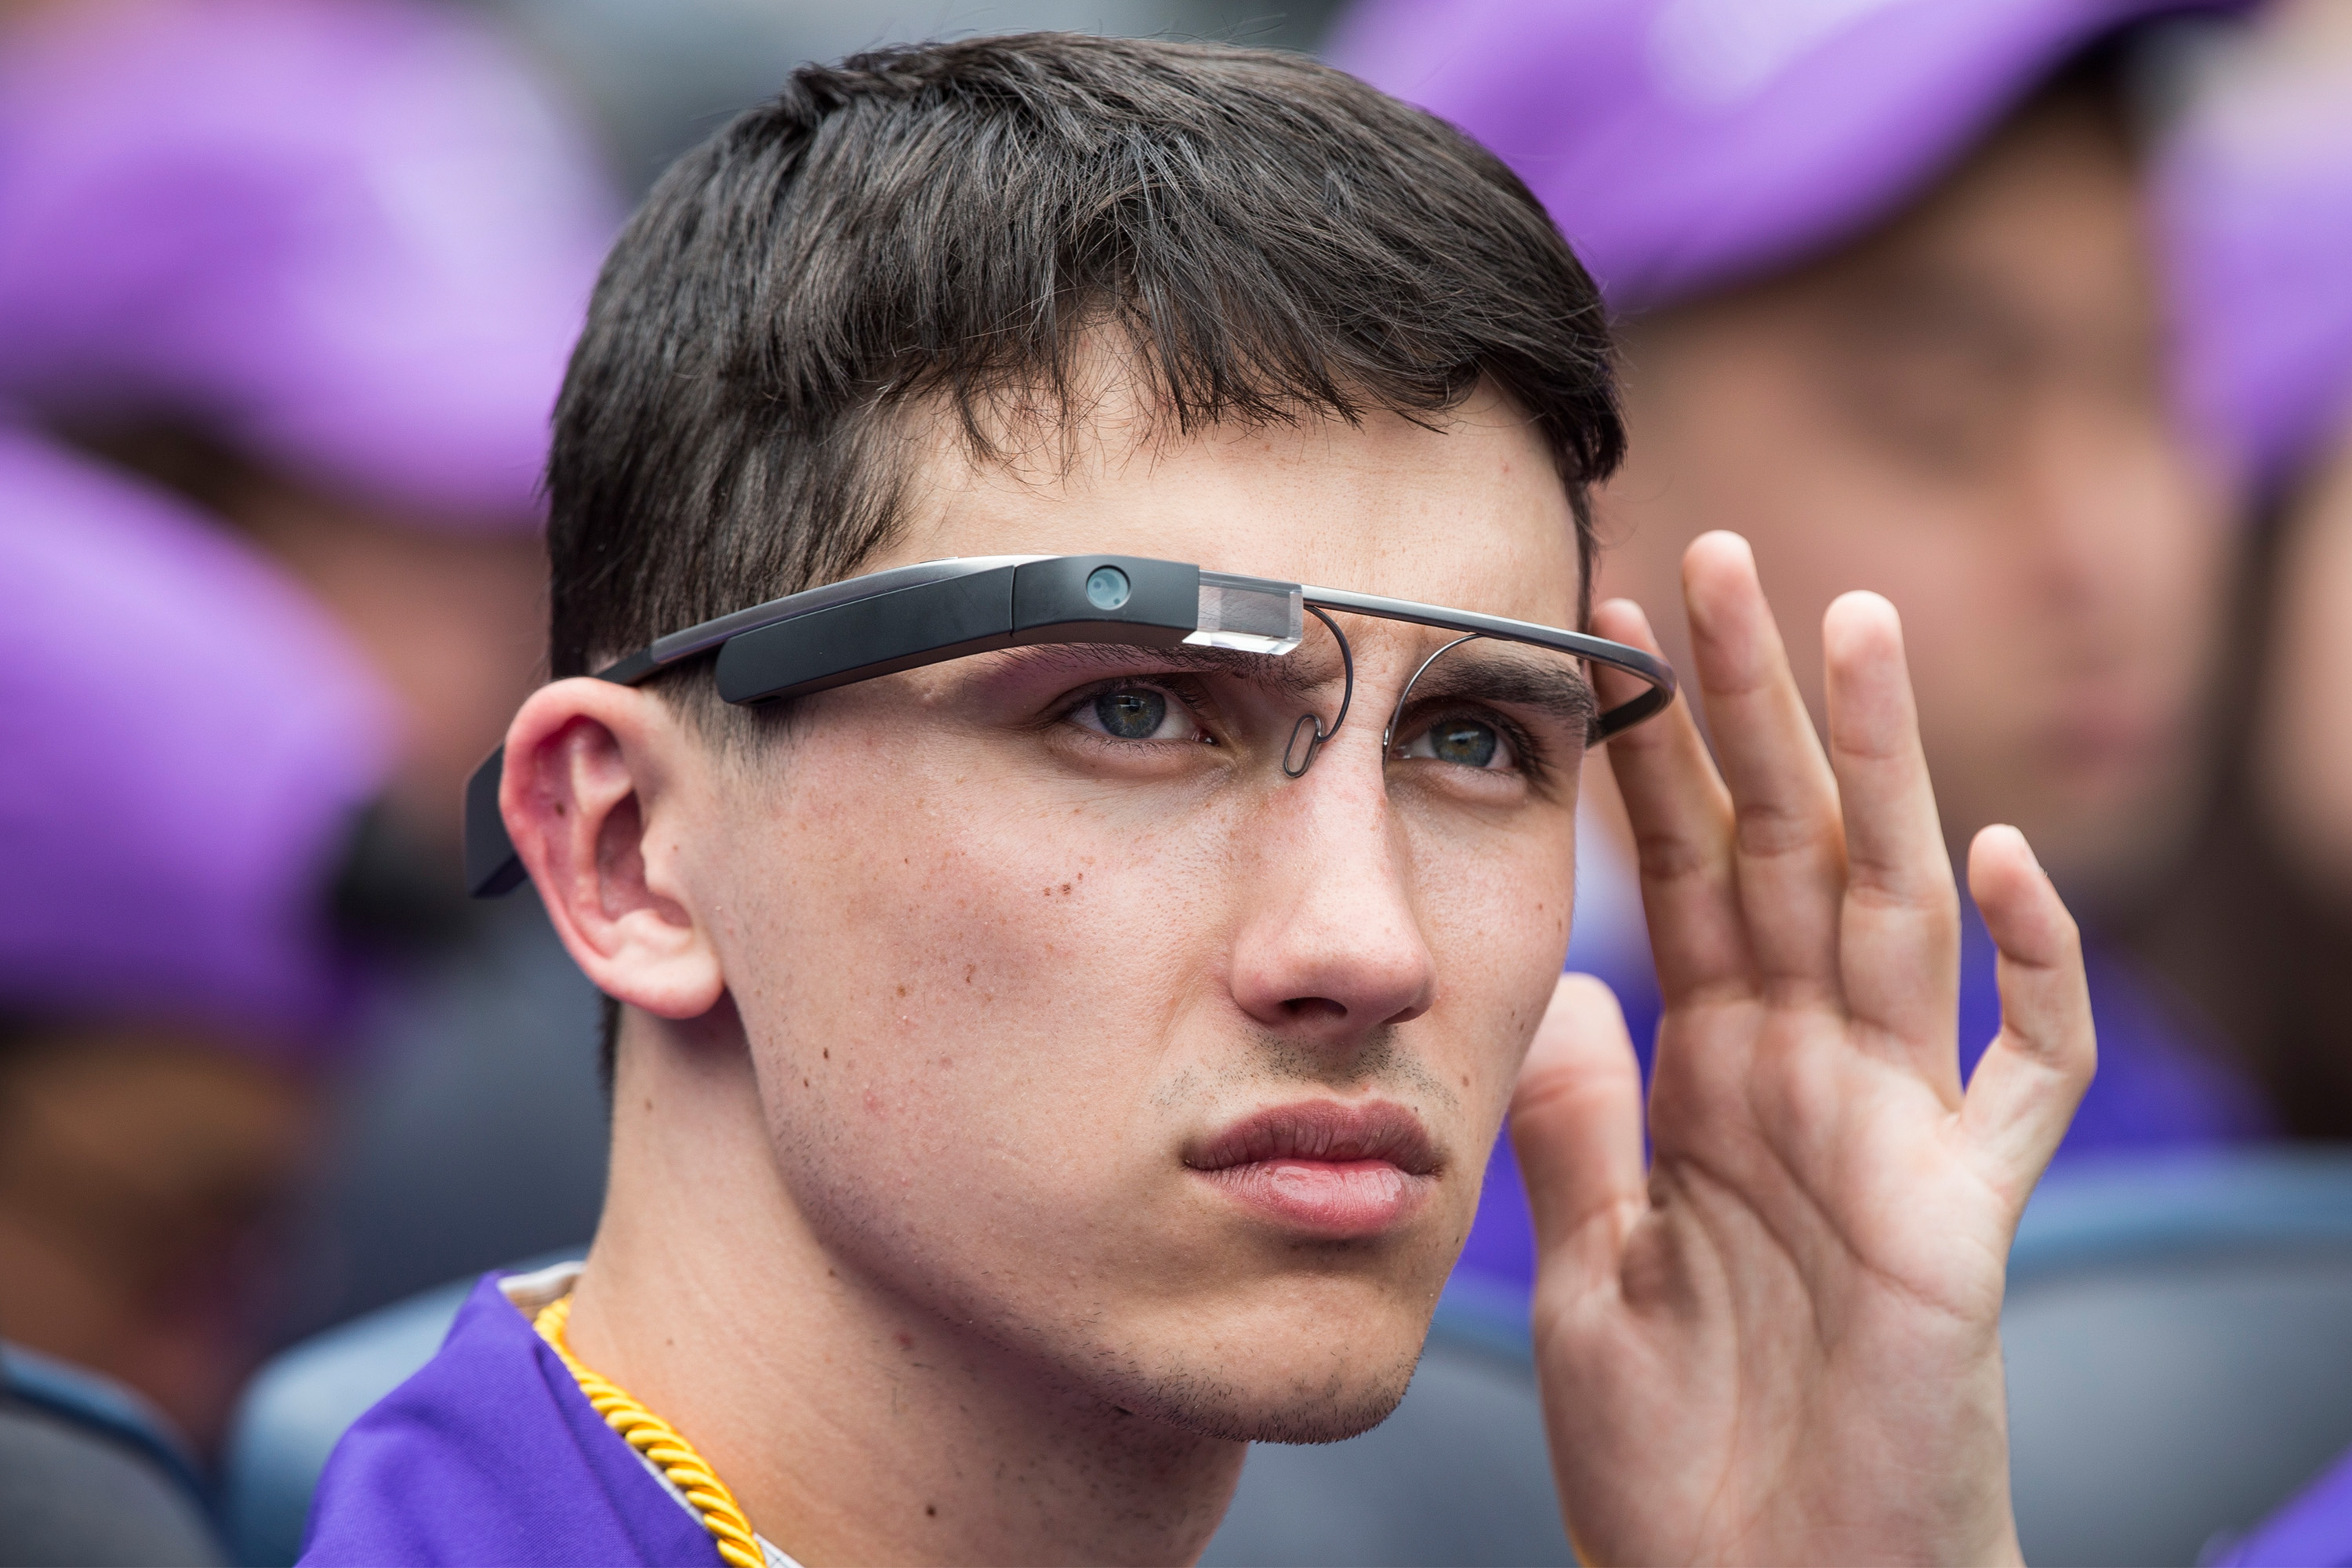 A student wears Google Glass at the 2014 New York University graduation ceremony at Yankee Stadium